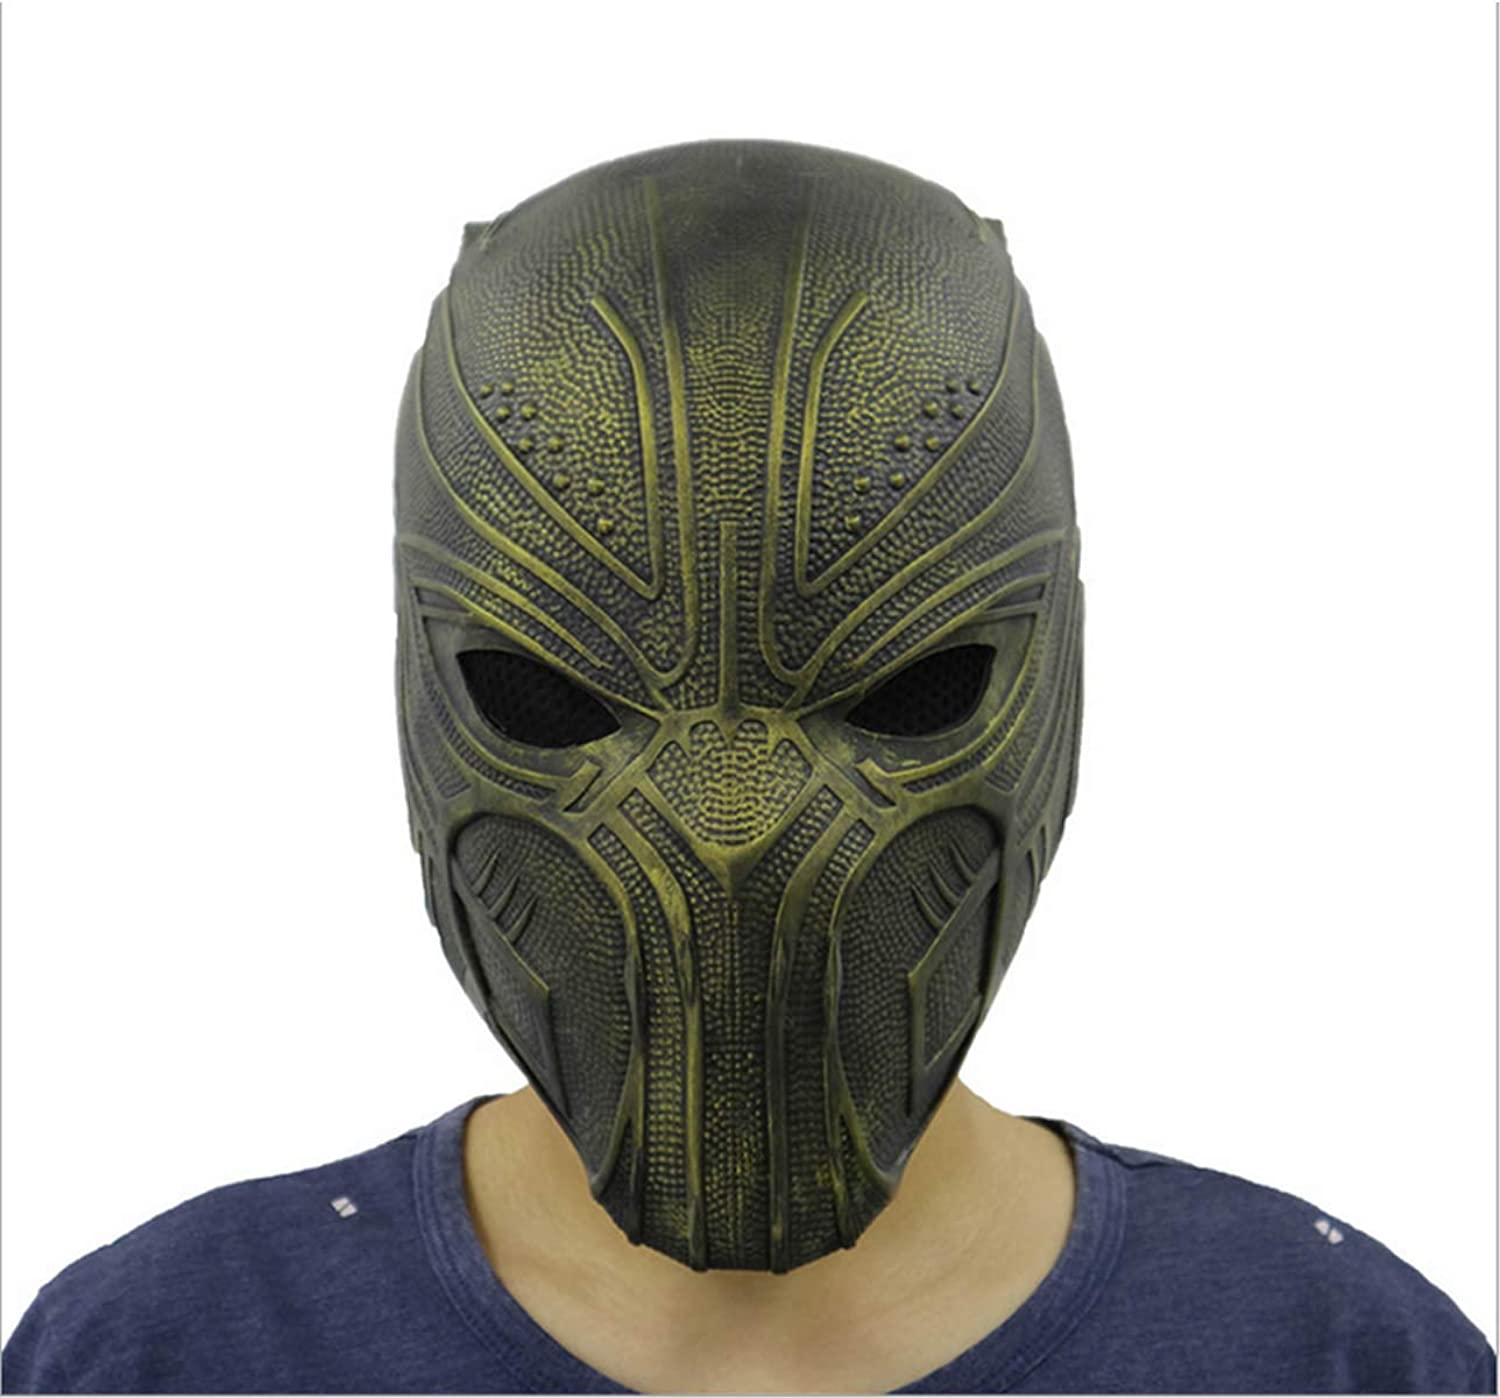 Hcoser Endgame Black Panther Mask T'Challa Helmet Latex Halloween Cosplay Costume Props Party for Adult